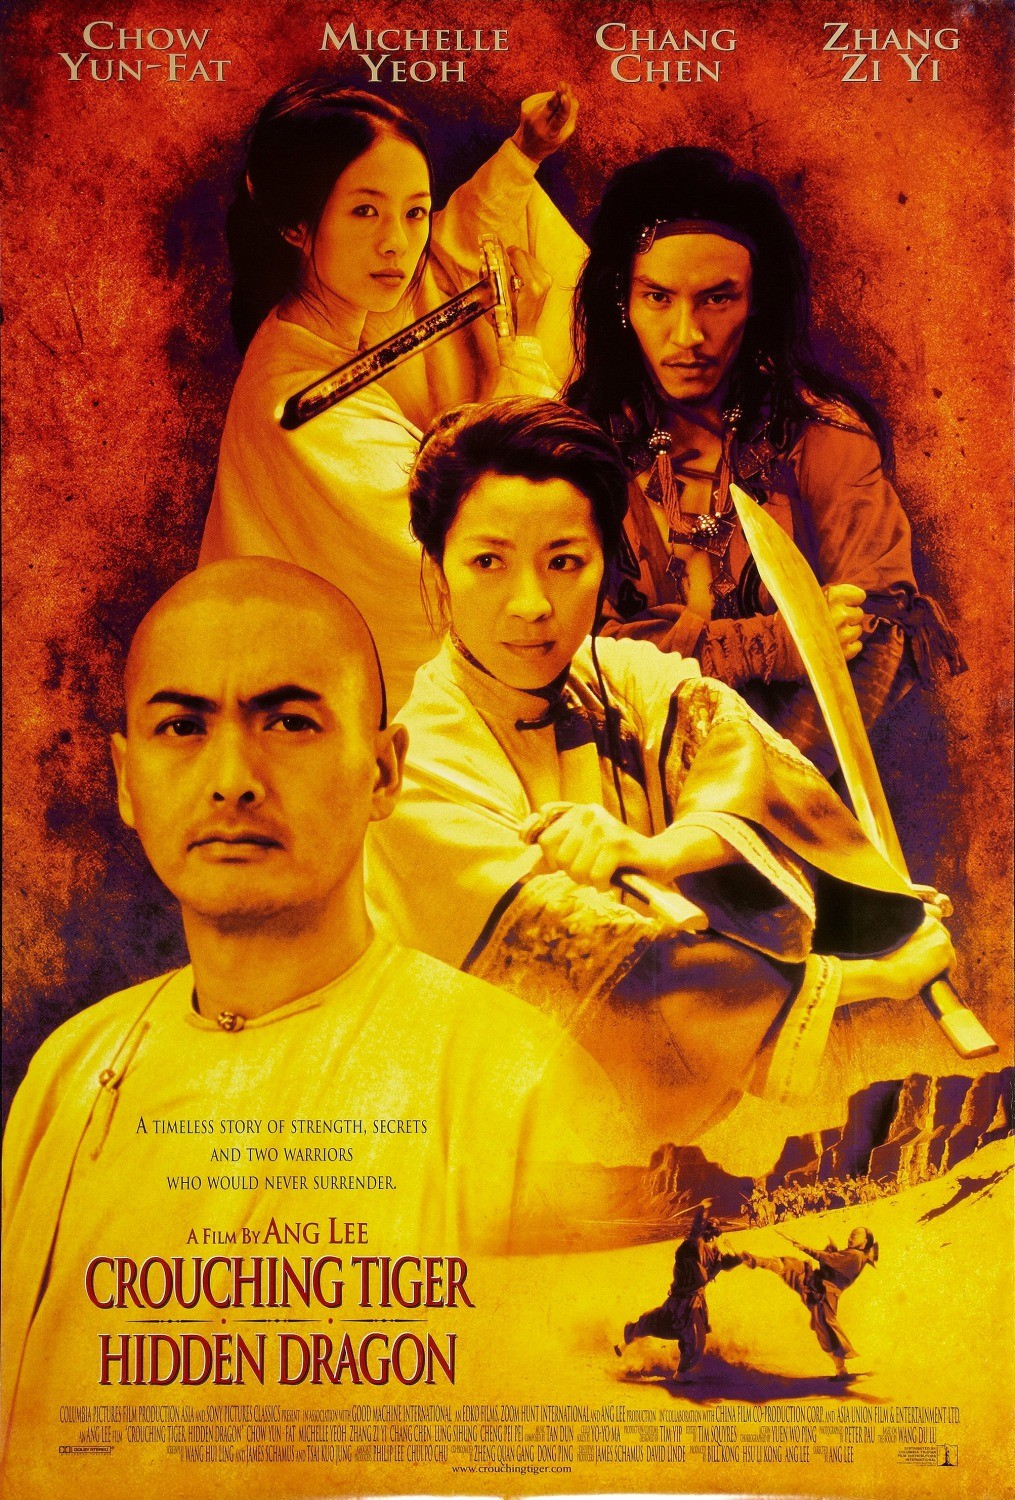 CROUCHING TIGER, HIDDEN DRAGON [Wo hu cang long]